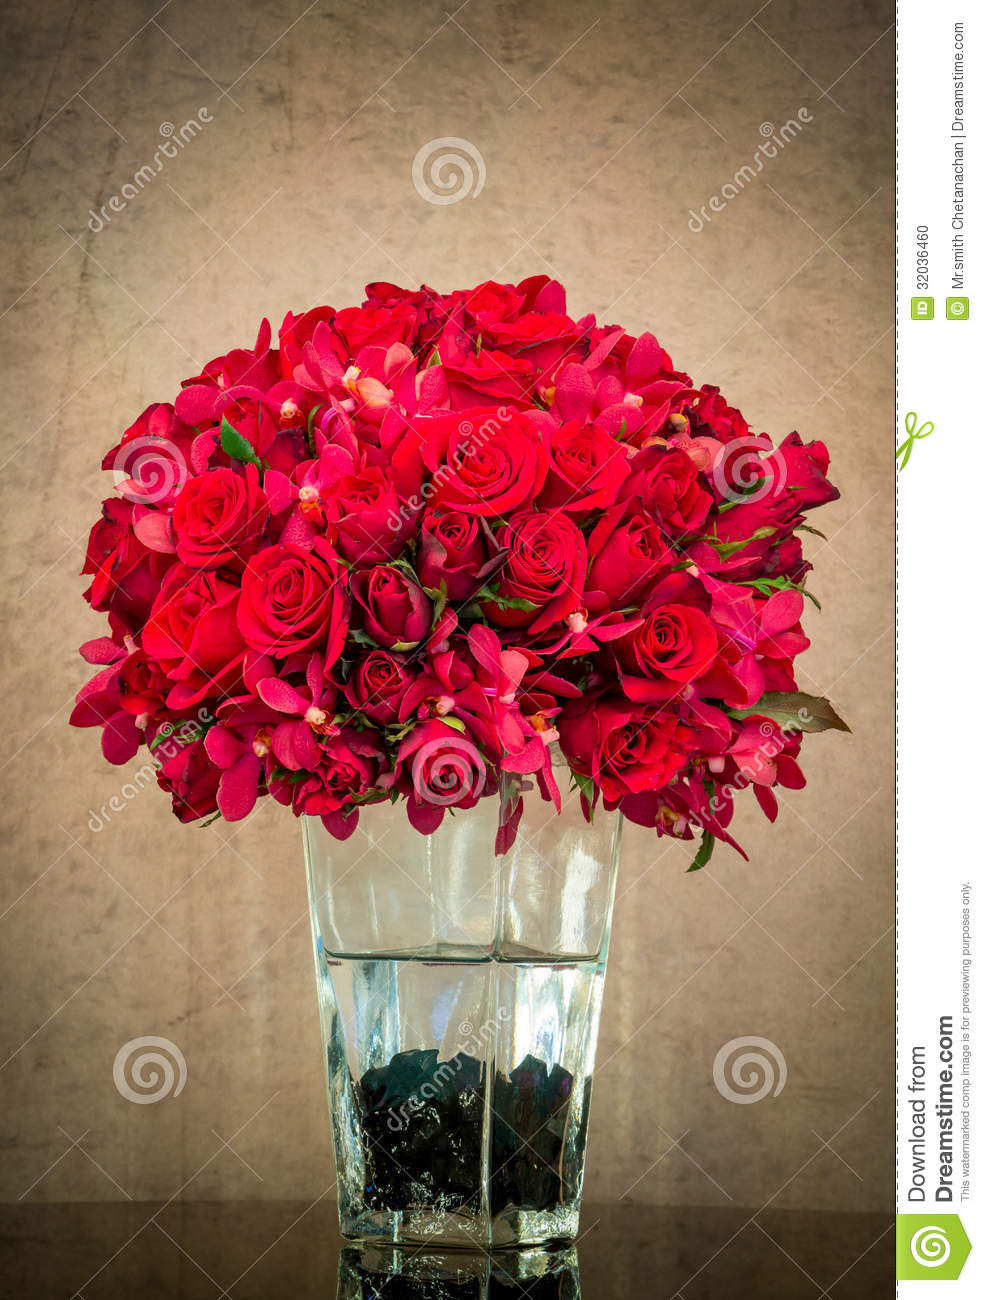 bouquet de rose de rouge dans le vase en verre photo stock image 32036460. Black Bedroom Furniture Sets. Home Design Ideas